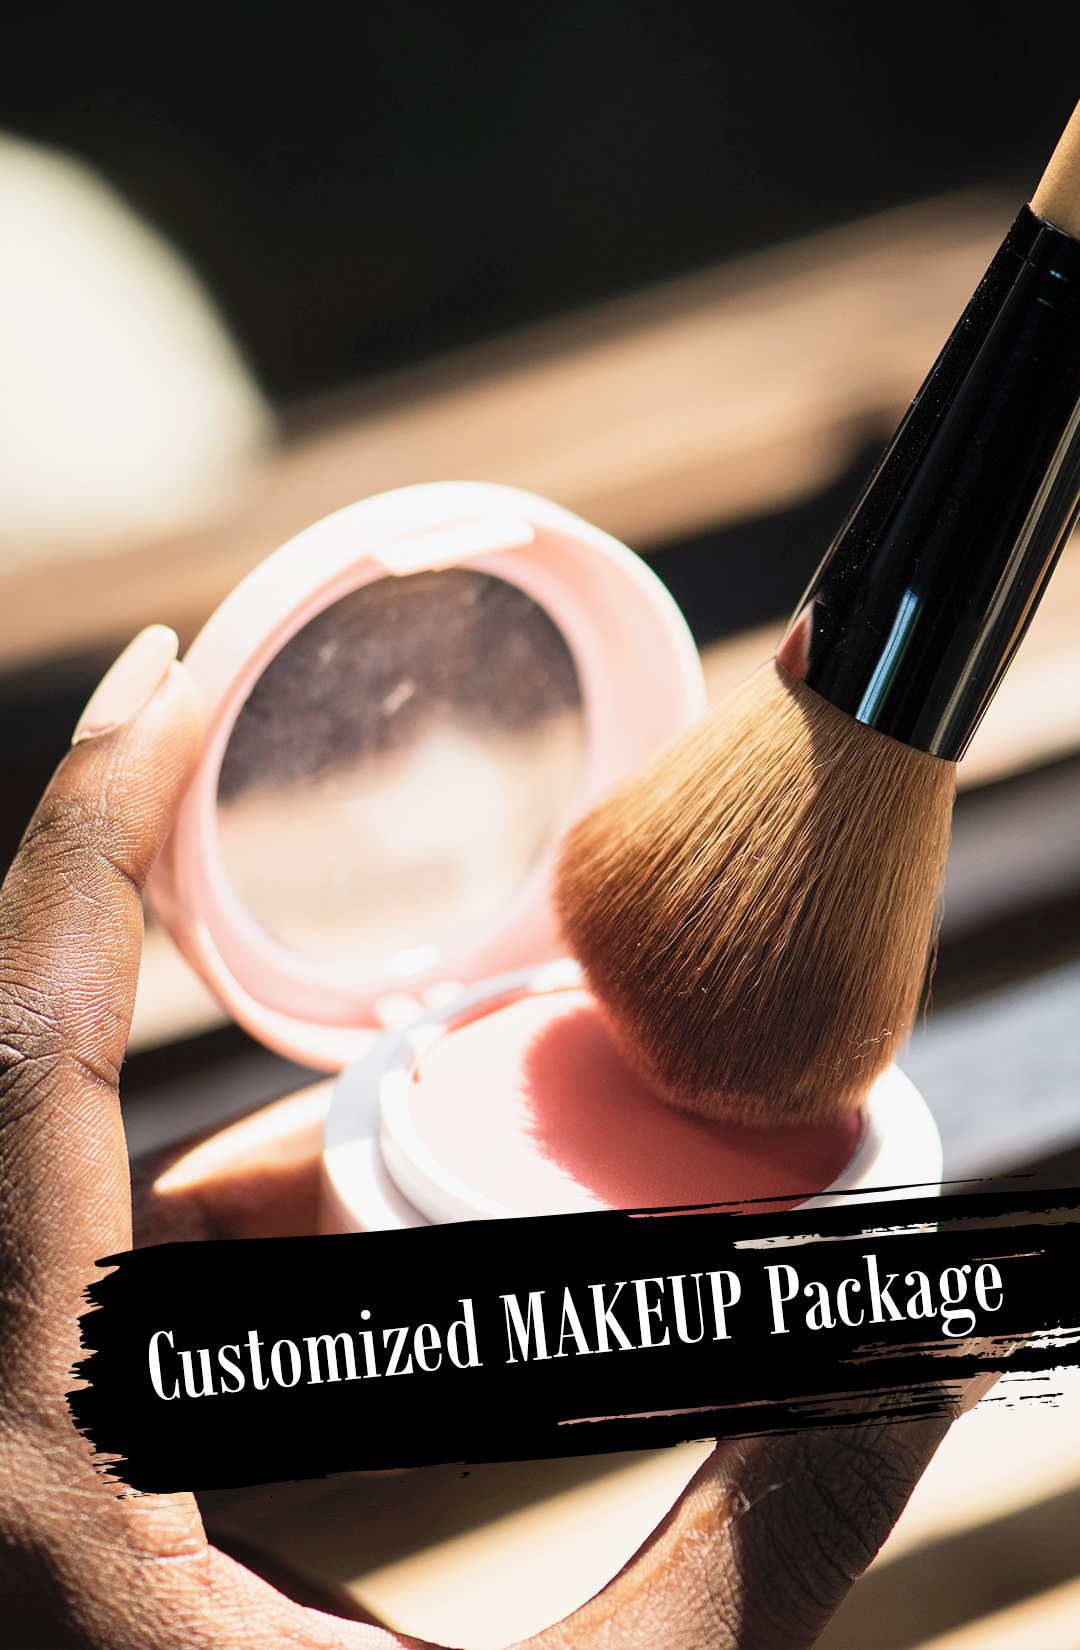 Customized MAKEUP Package.jpg